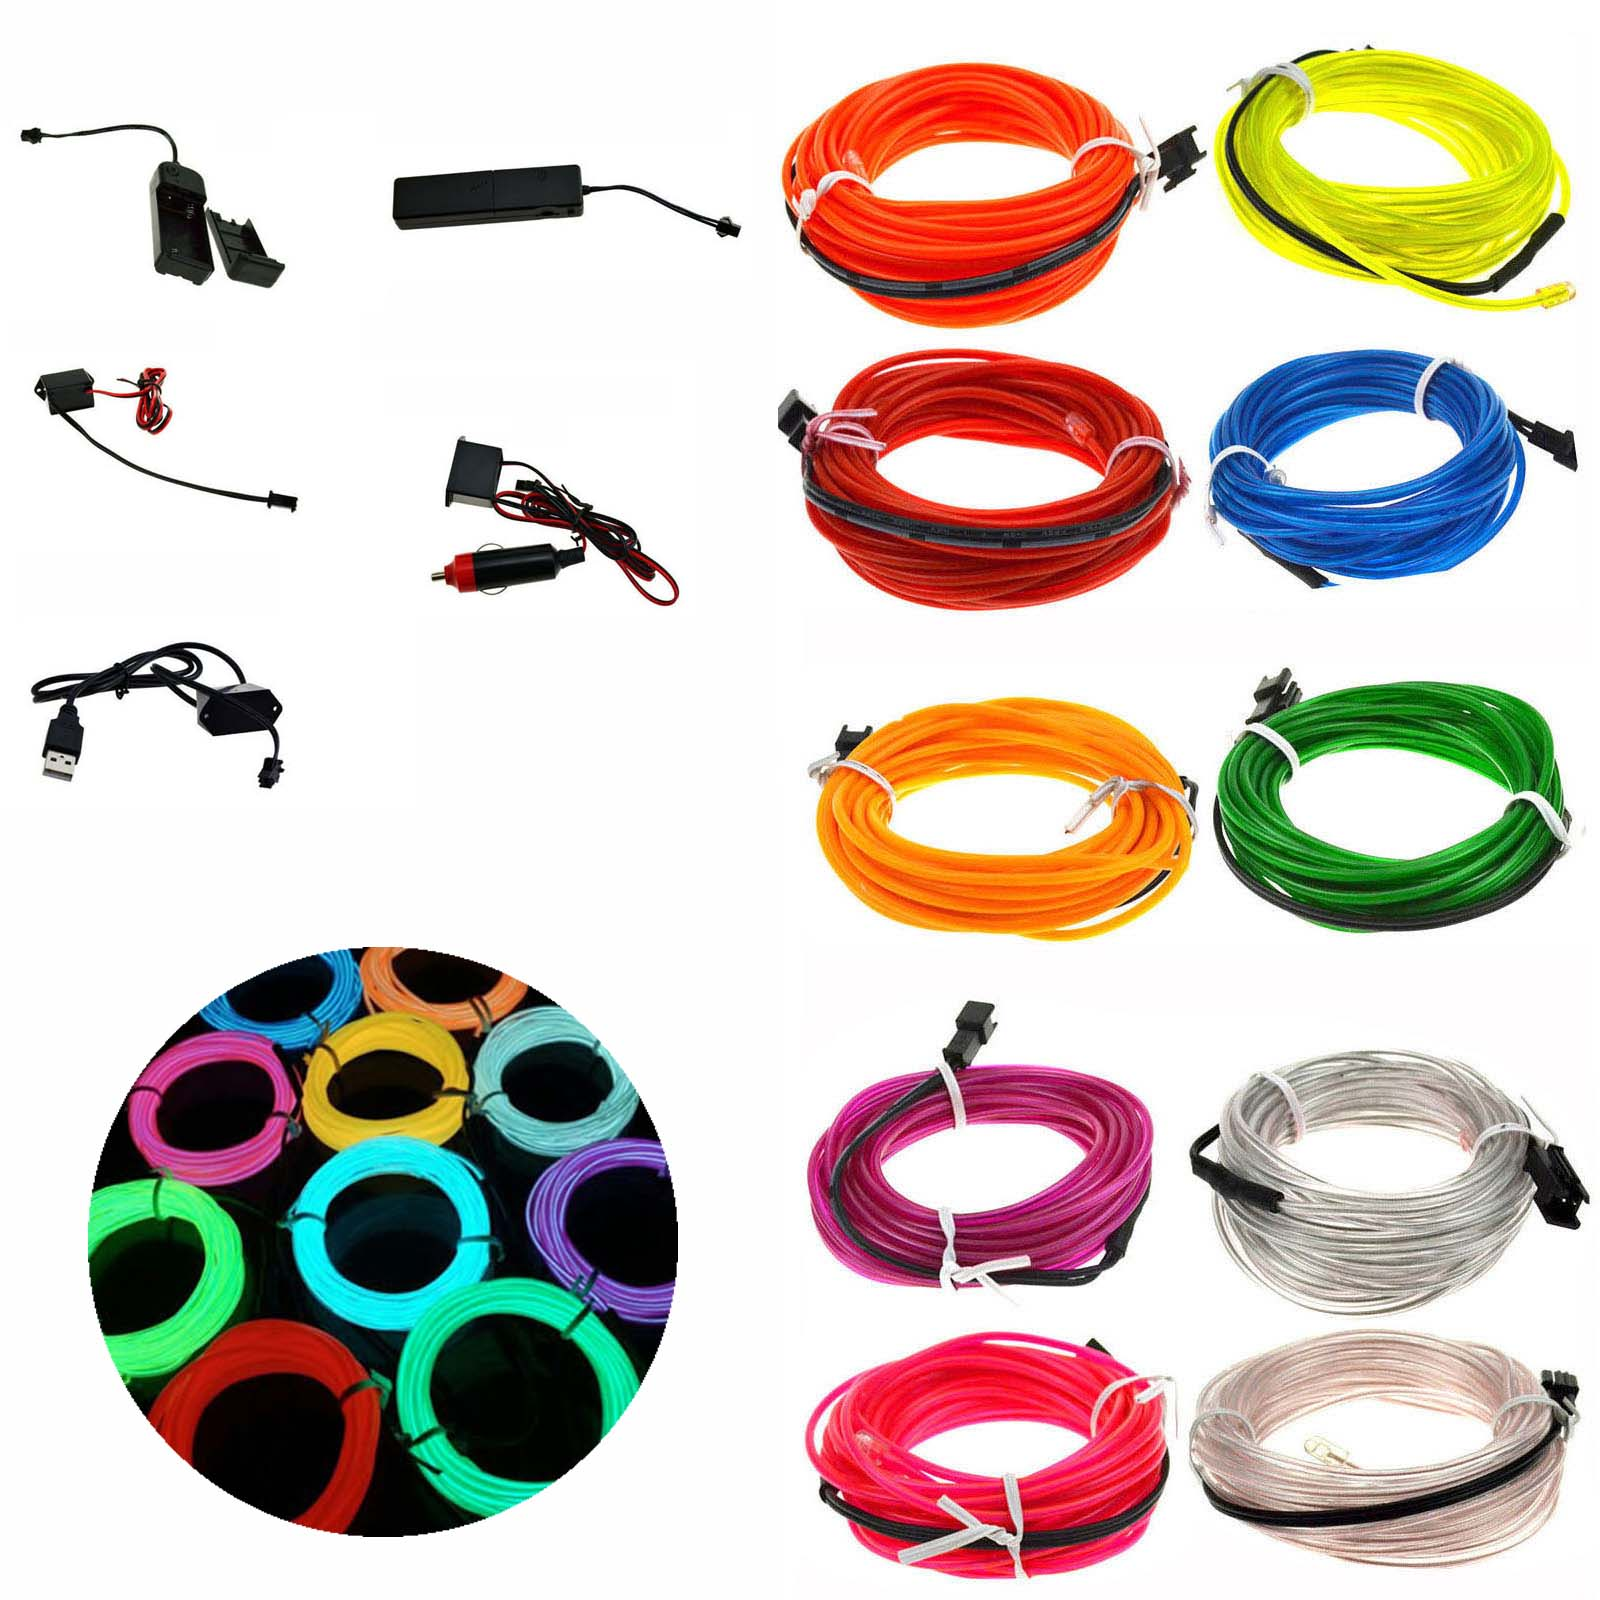 1M 3.28ft Flexible Neon Light Glow LED EL Wire Rope tape Cable Strip LED Neon Lights Shoes Clothing Car waterproof + Drive